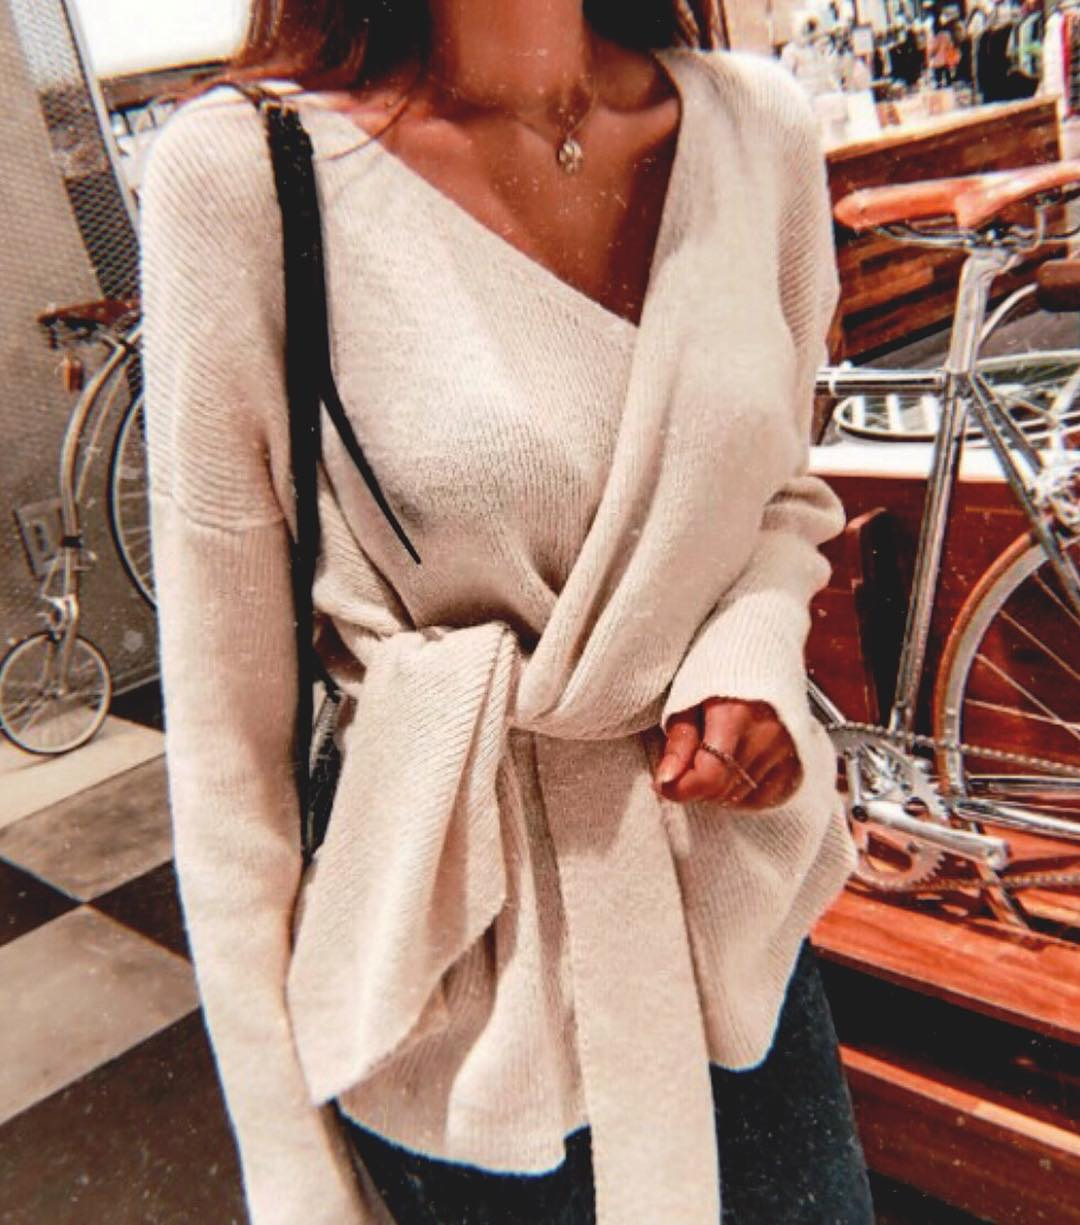 Wrap Belted Sweater For Fall: How To Style And Wear 2020